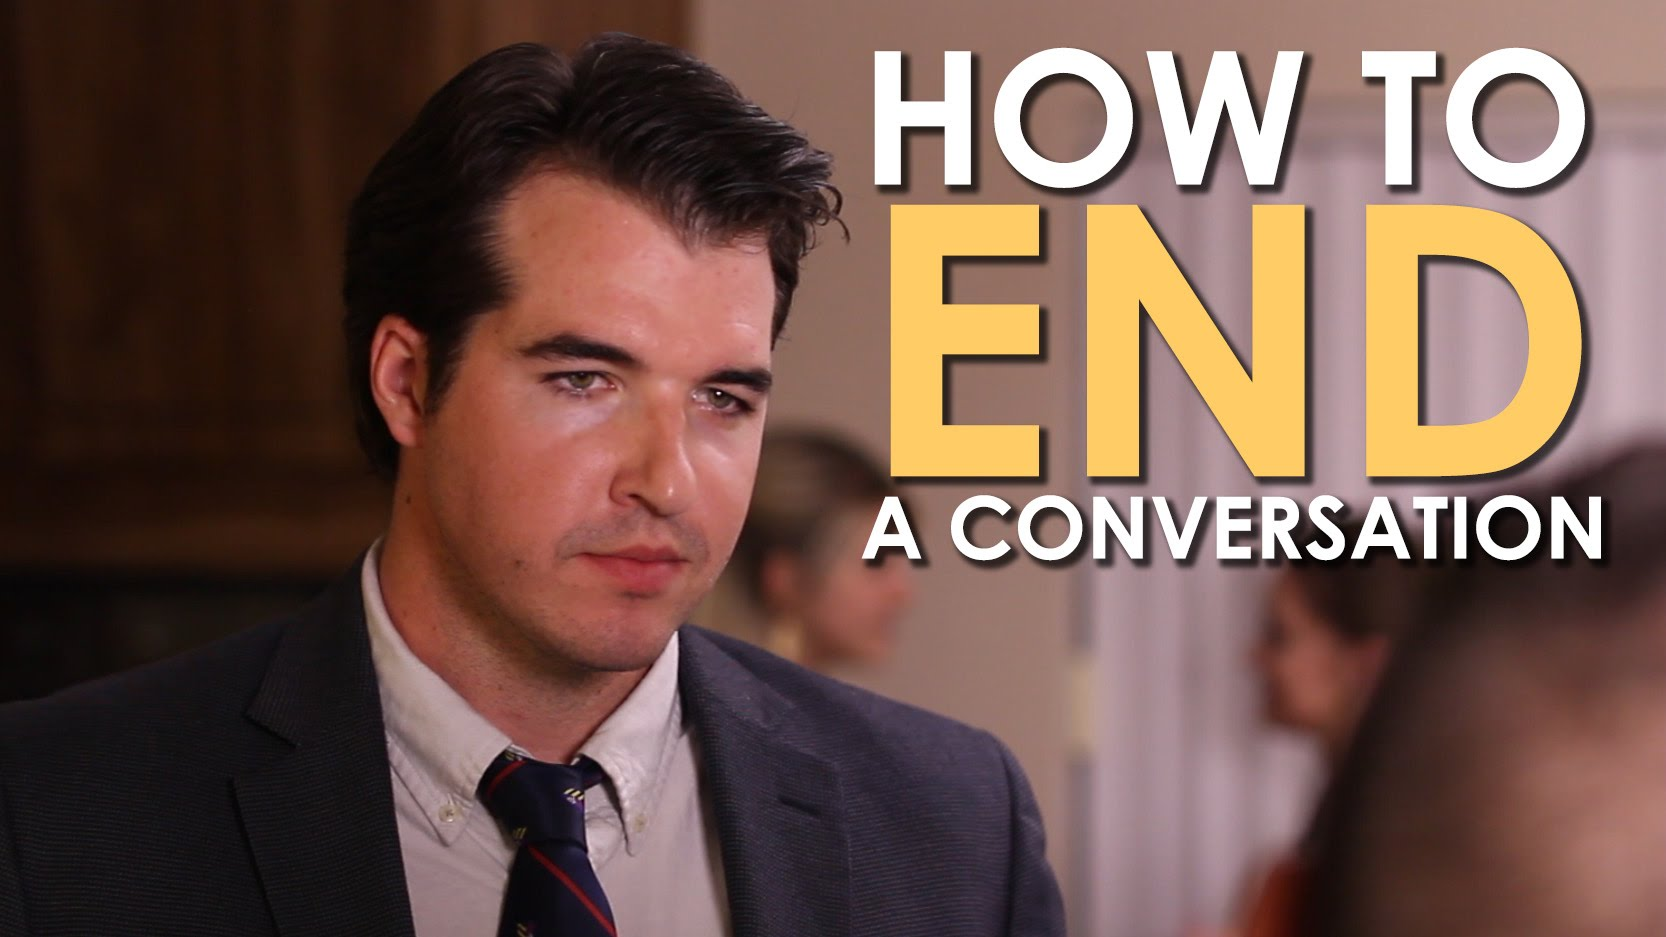 How to End a Conversation [VIDEO] | The Art of Manliness